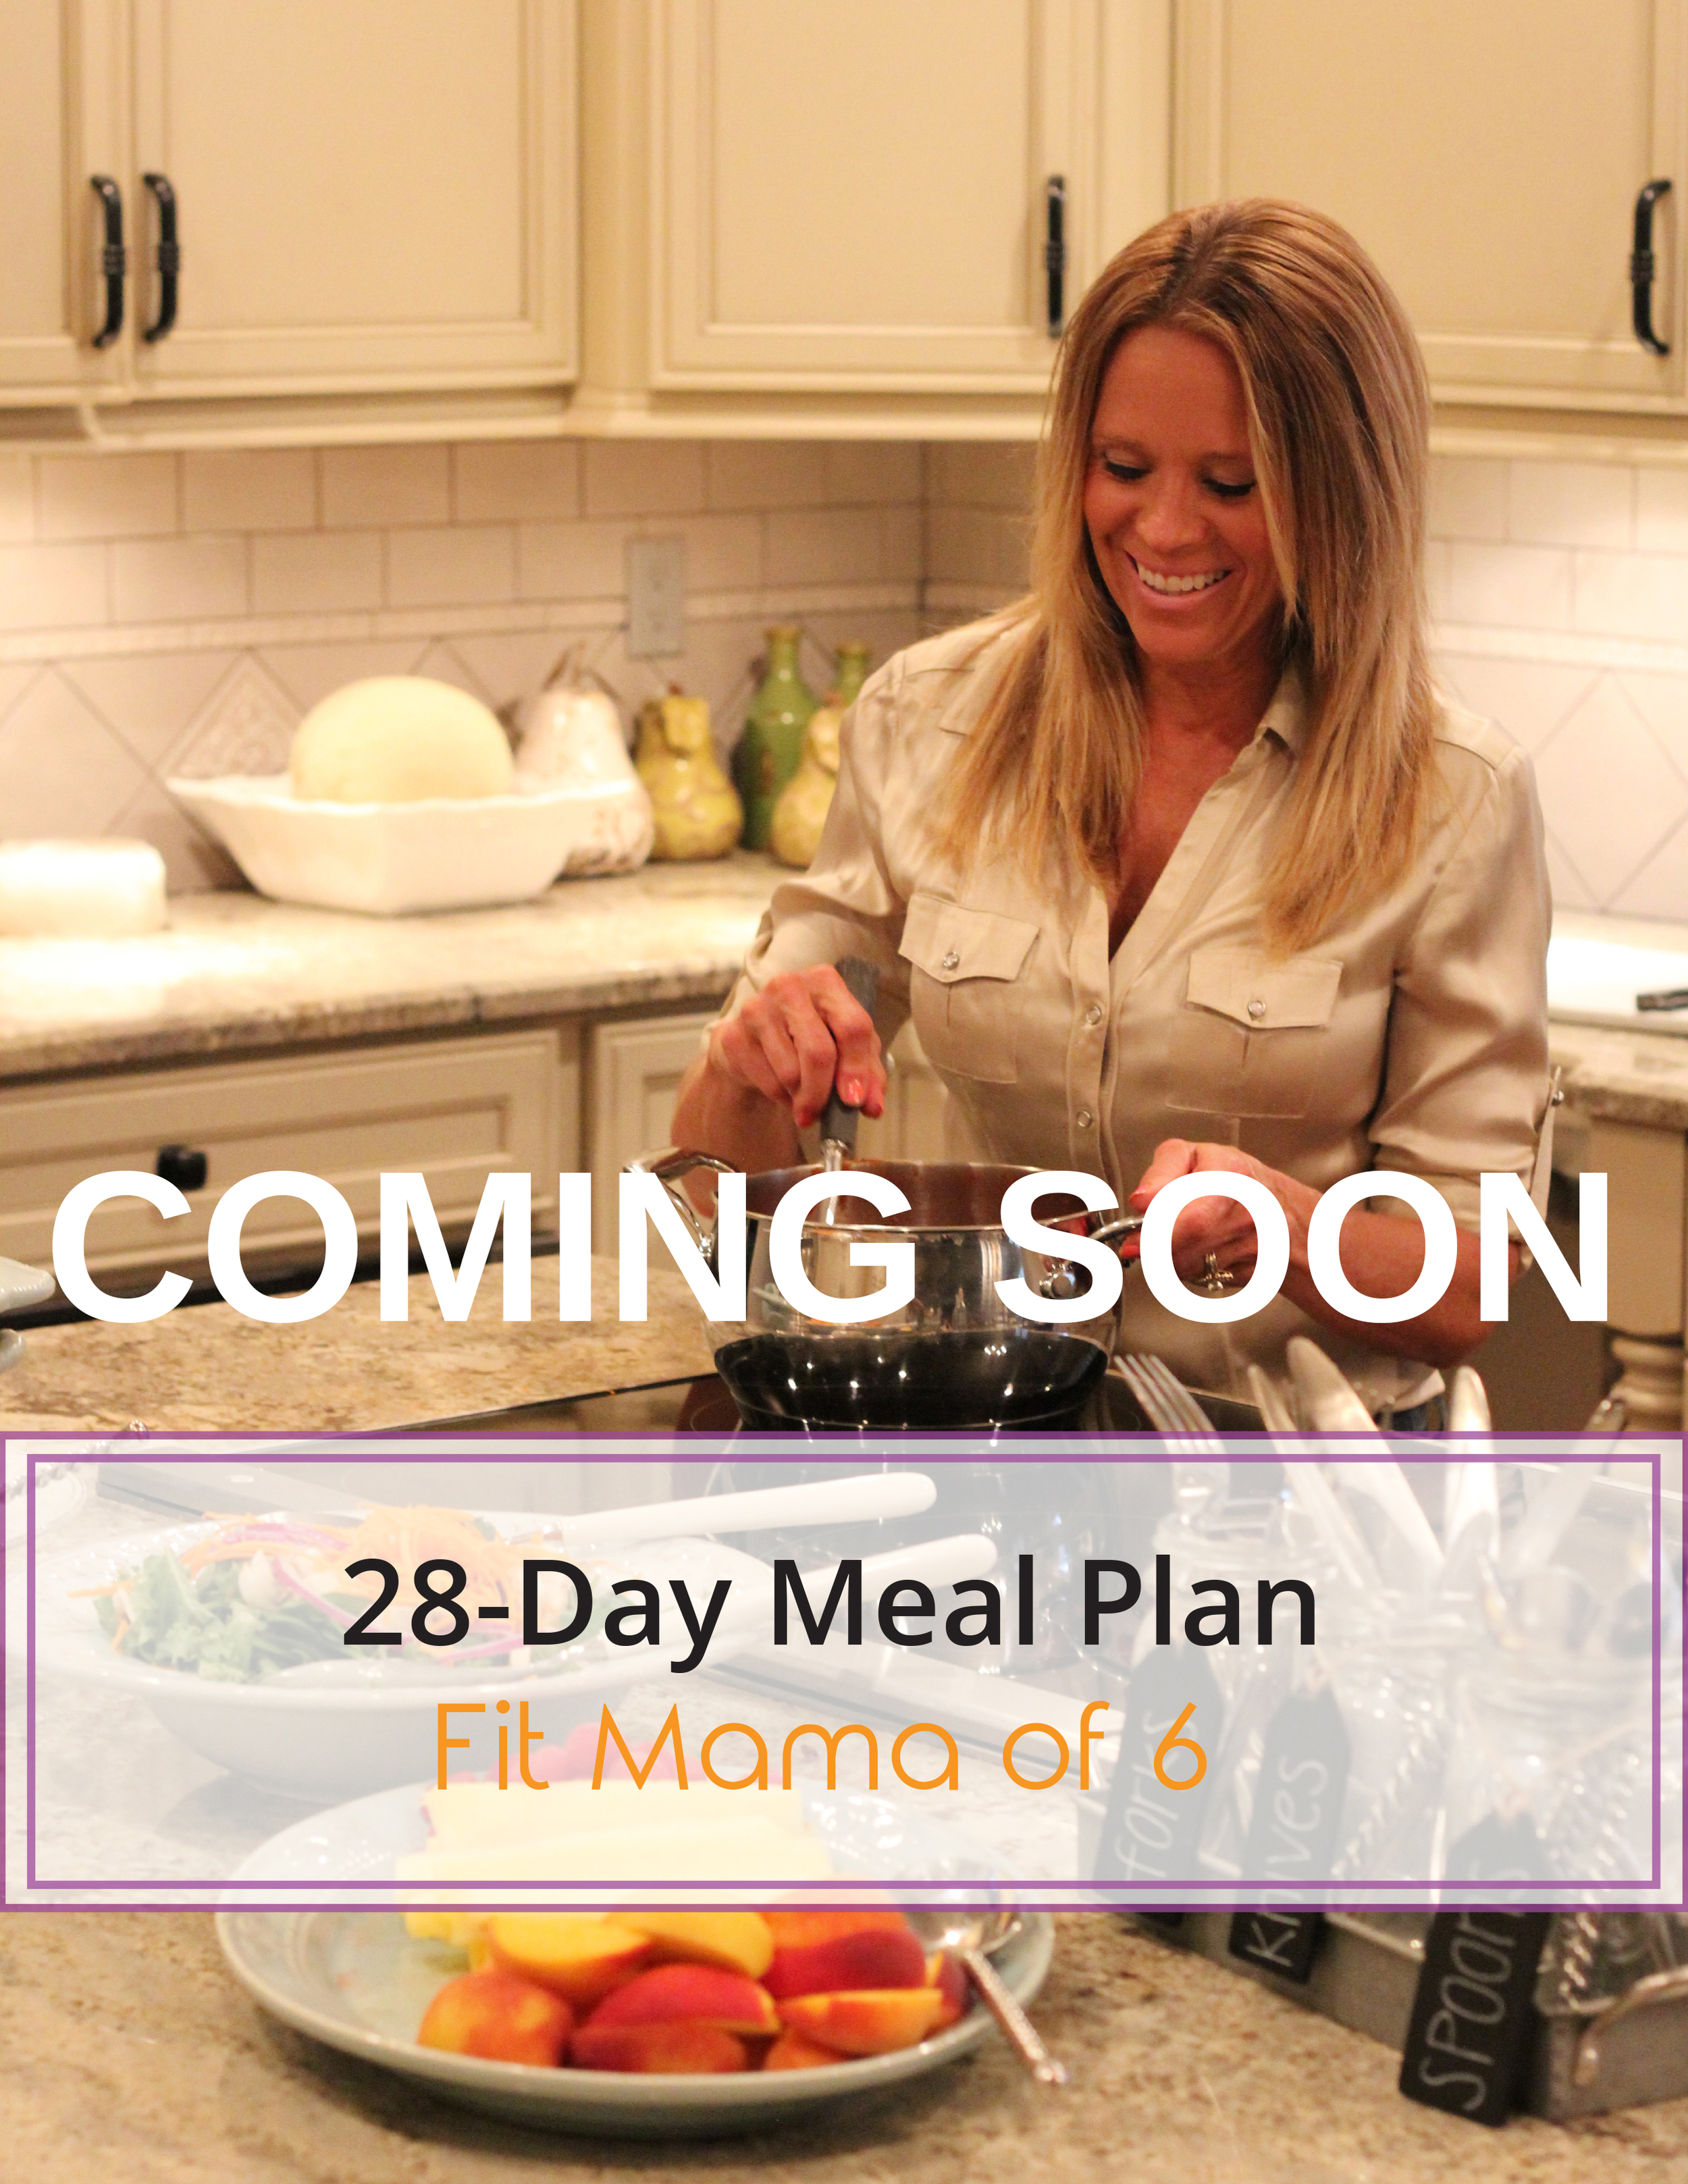 Fit Mama of 6 Guide - stay tuned!